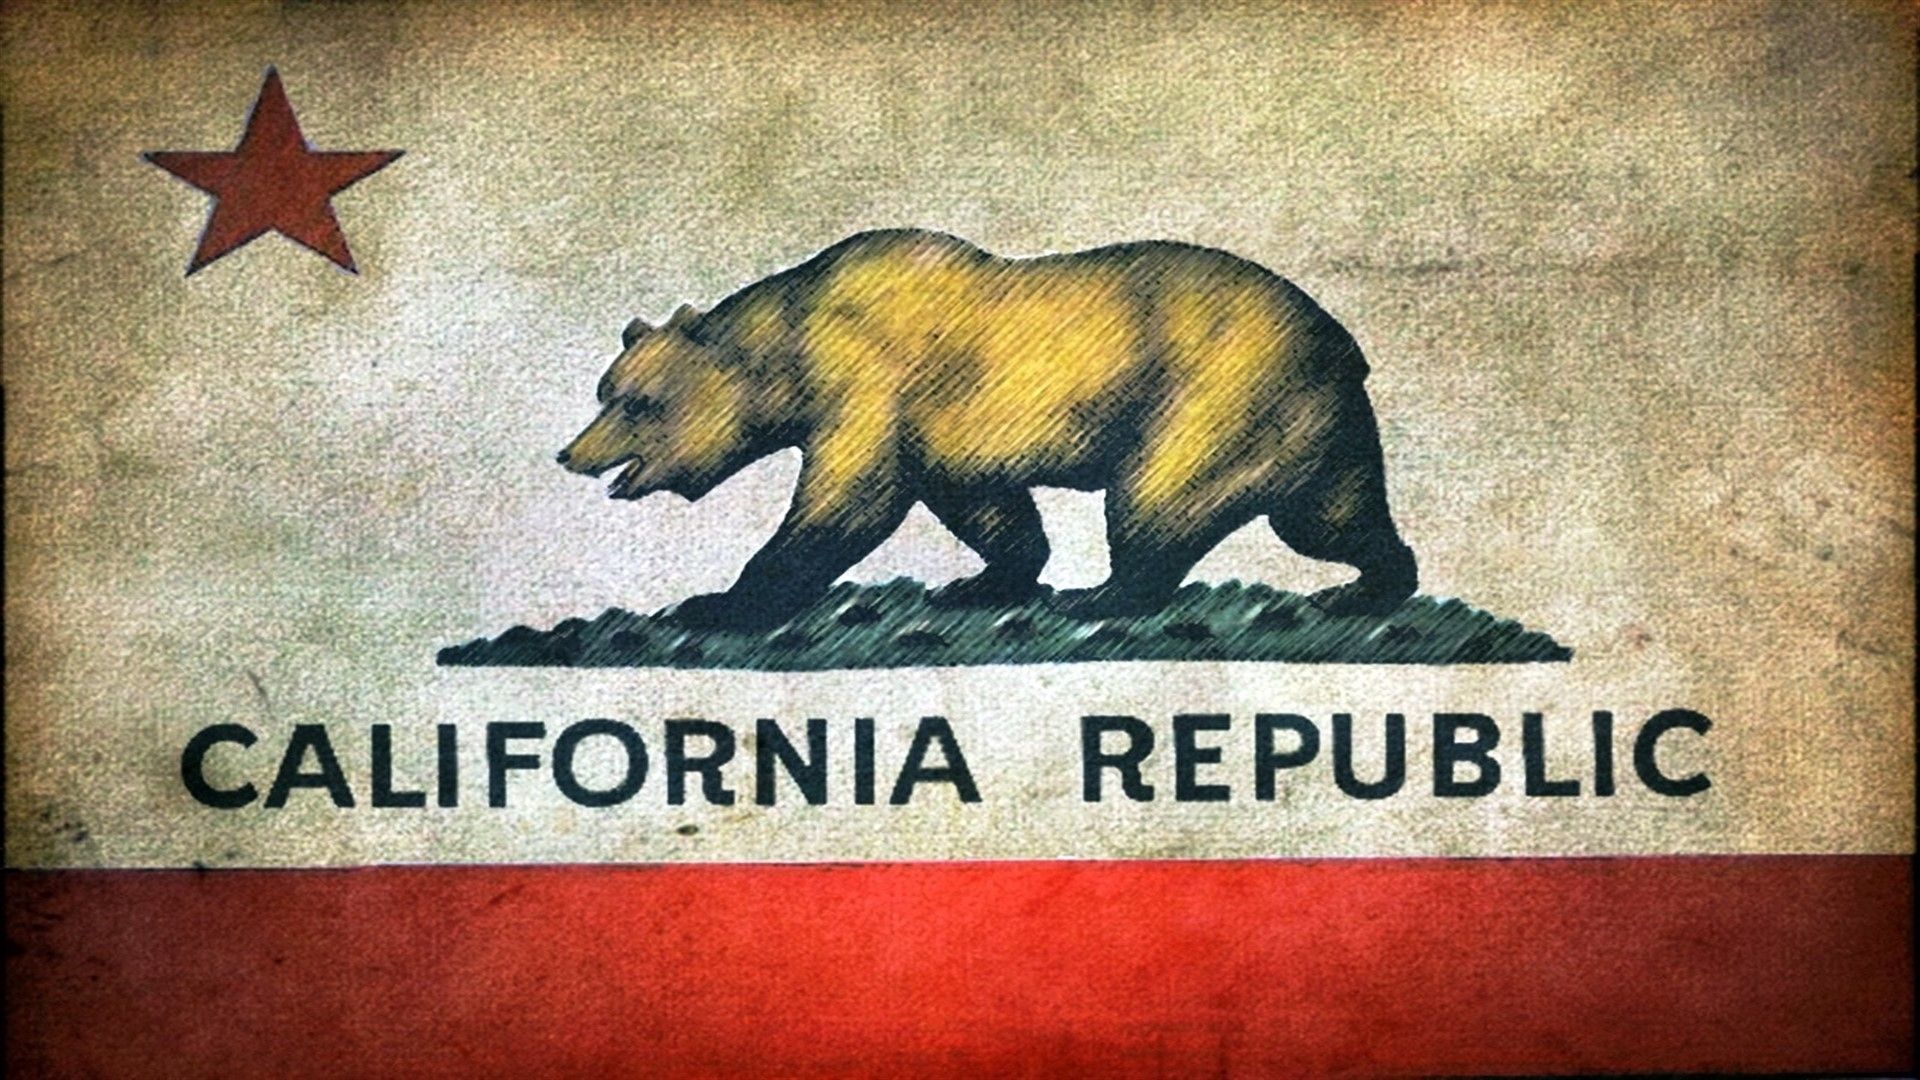 California Flag Clip Art 2140057 Hd Wallpaper Backgrounds Download